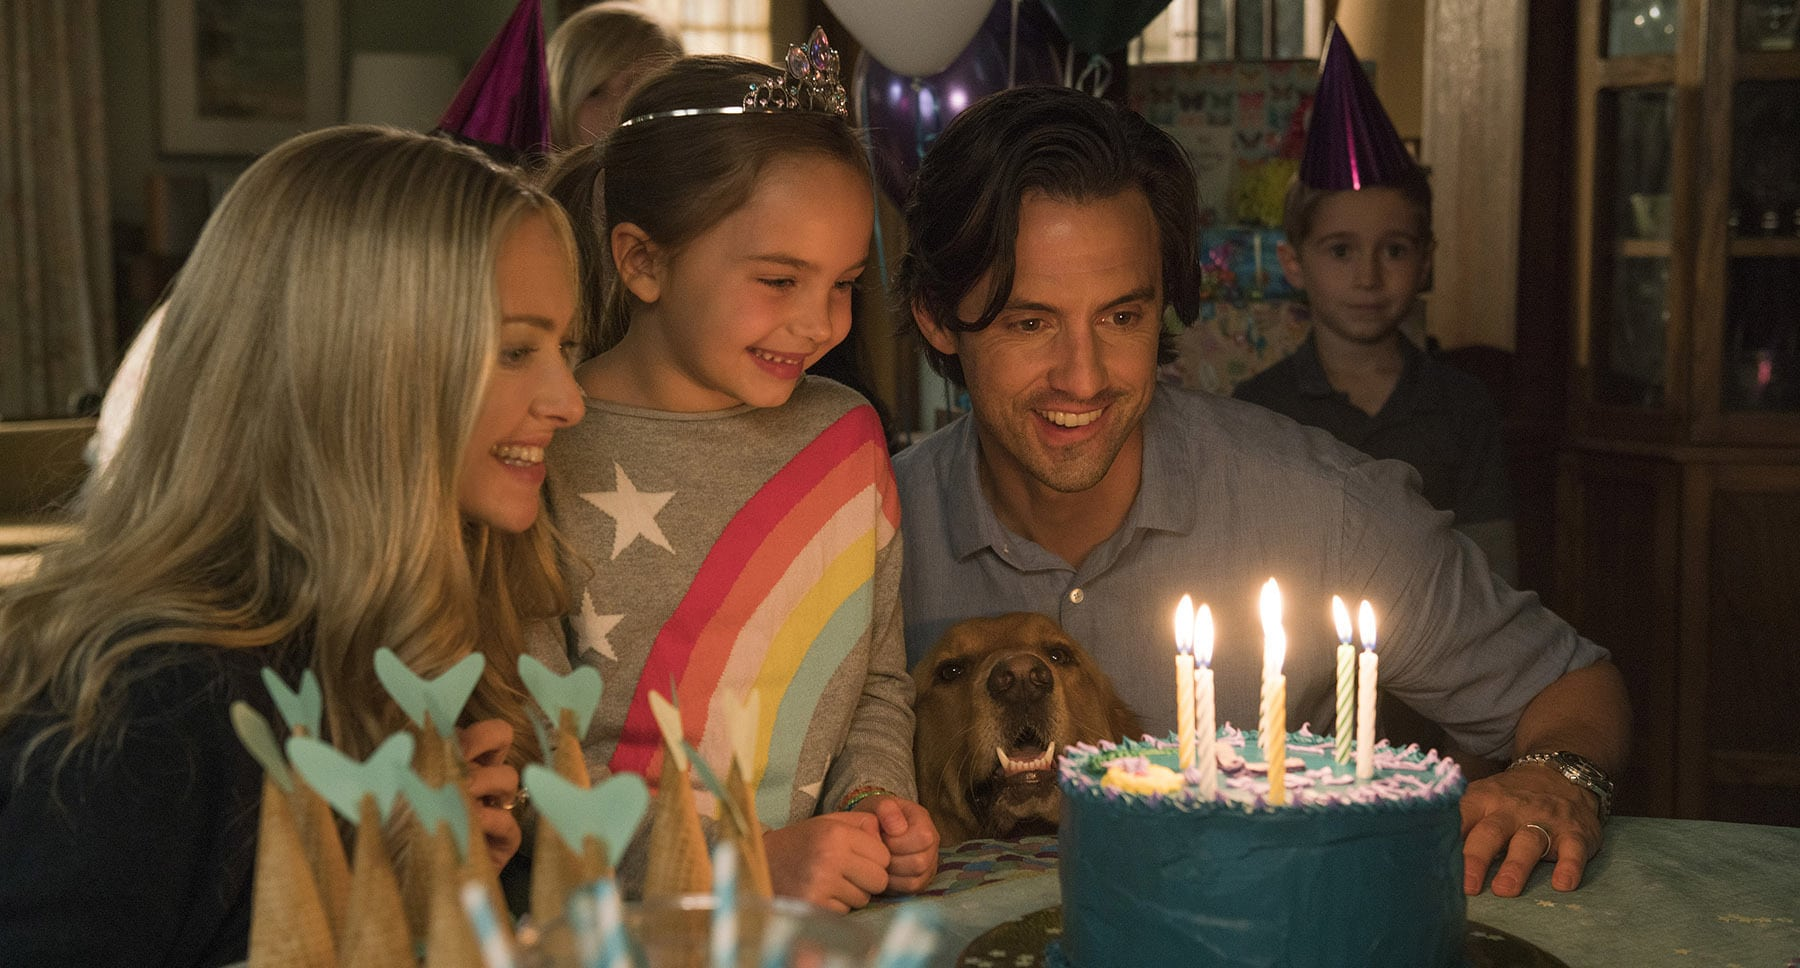 "Denny (Milo Ventimiglia), Eve (Amanda Seyfried), dog Enzo and Zoë (Ryan Kiera Armstrong) looking at a birthday cake in the movie ""The Art of Racing in the Rain"""